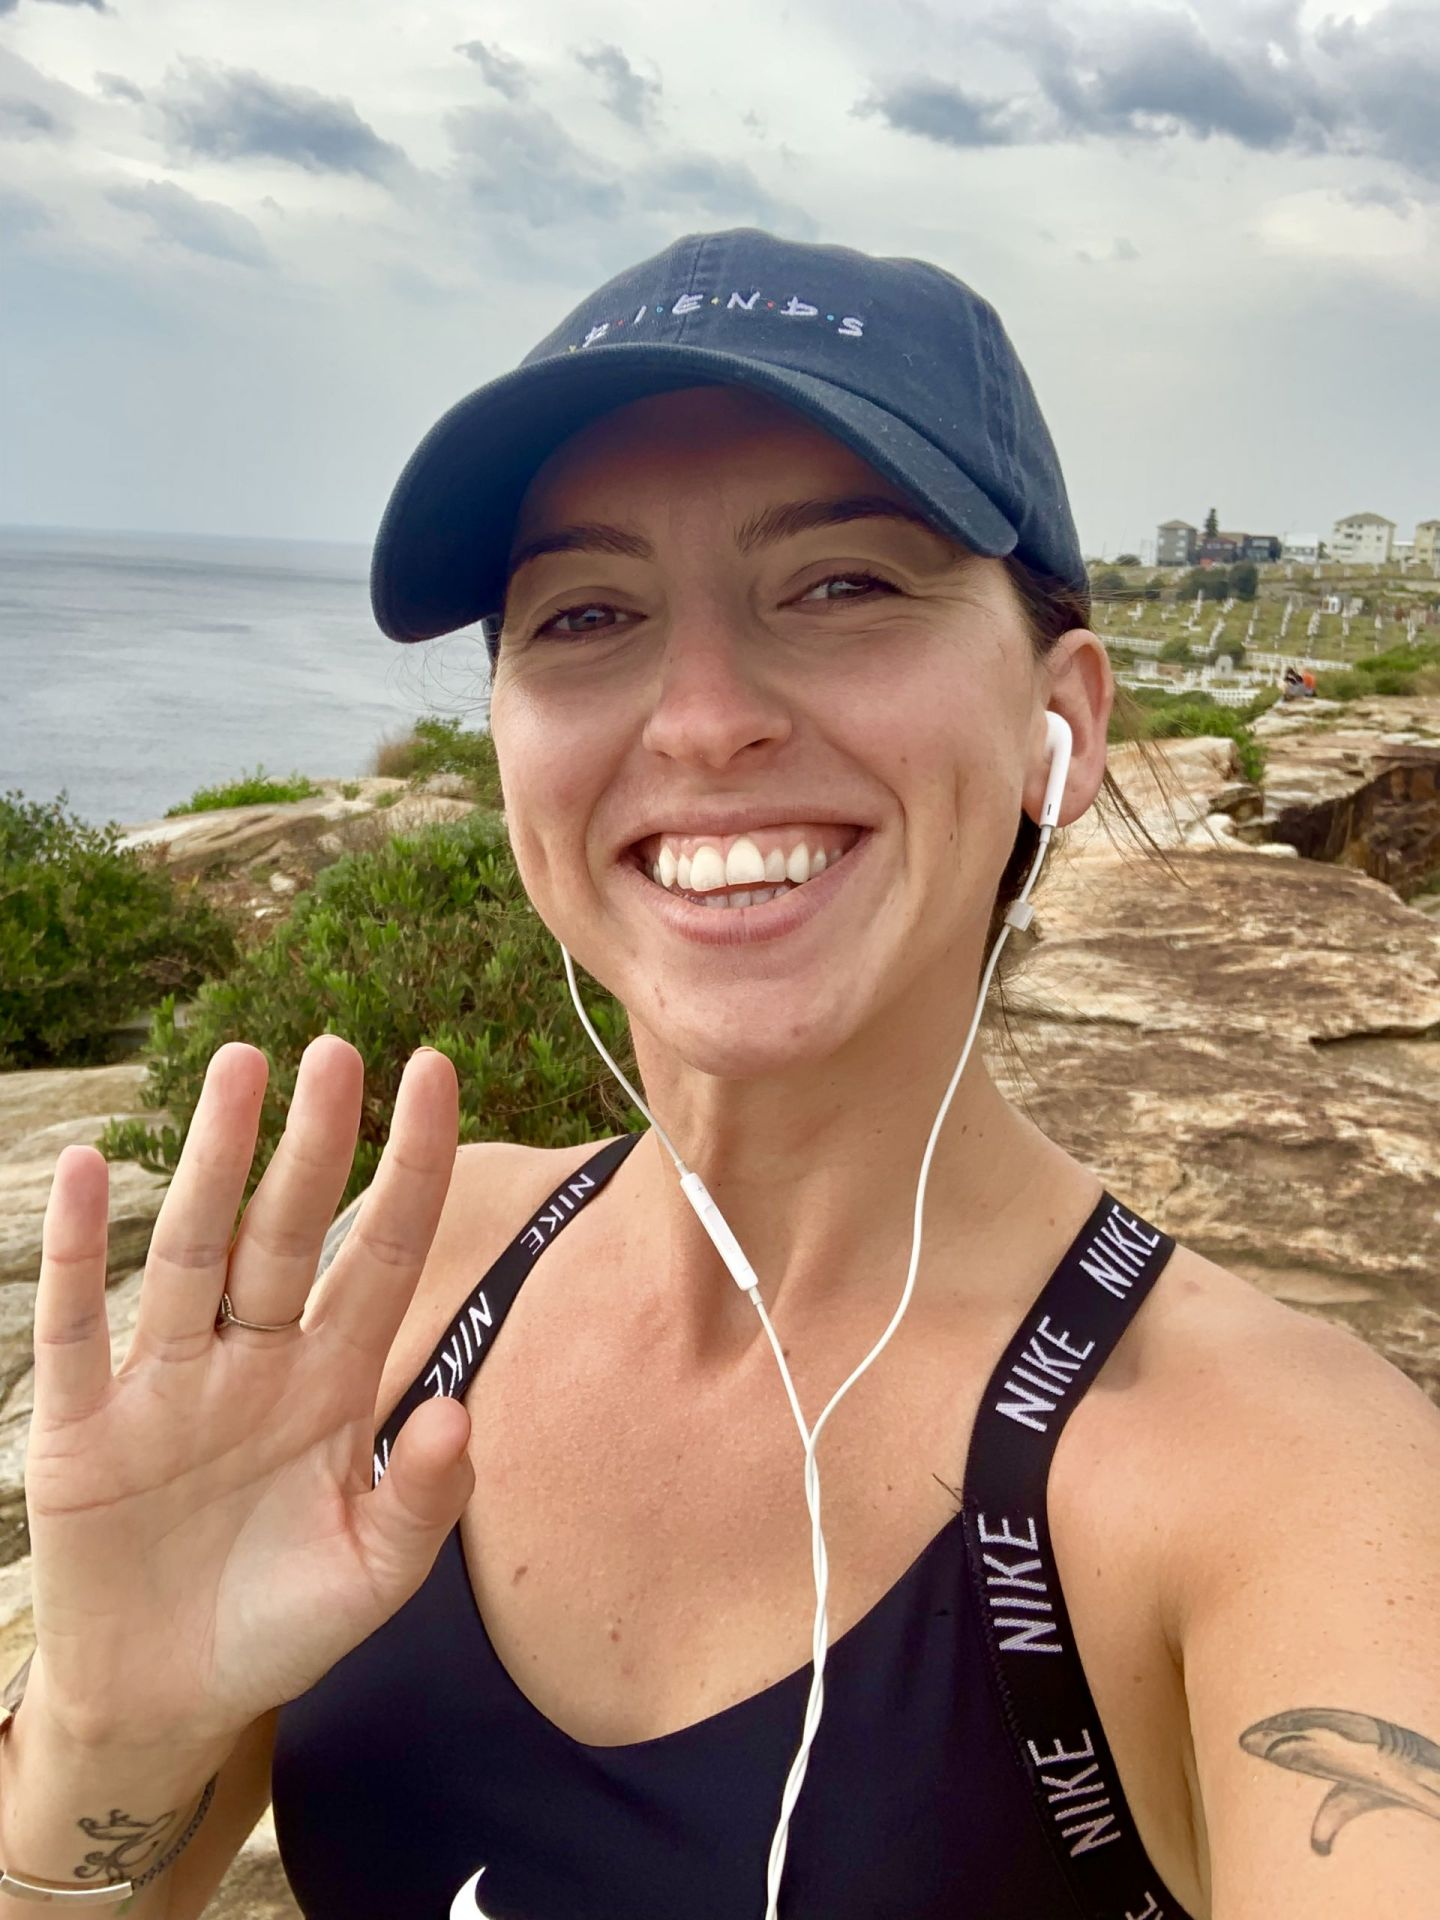 """Tips on the run"" – Why I am currently sharing 1 tip per day via Instagram & Facebook stories"